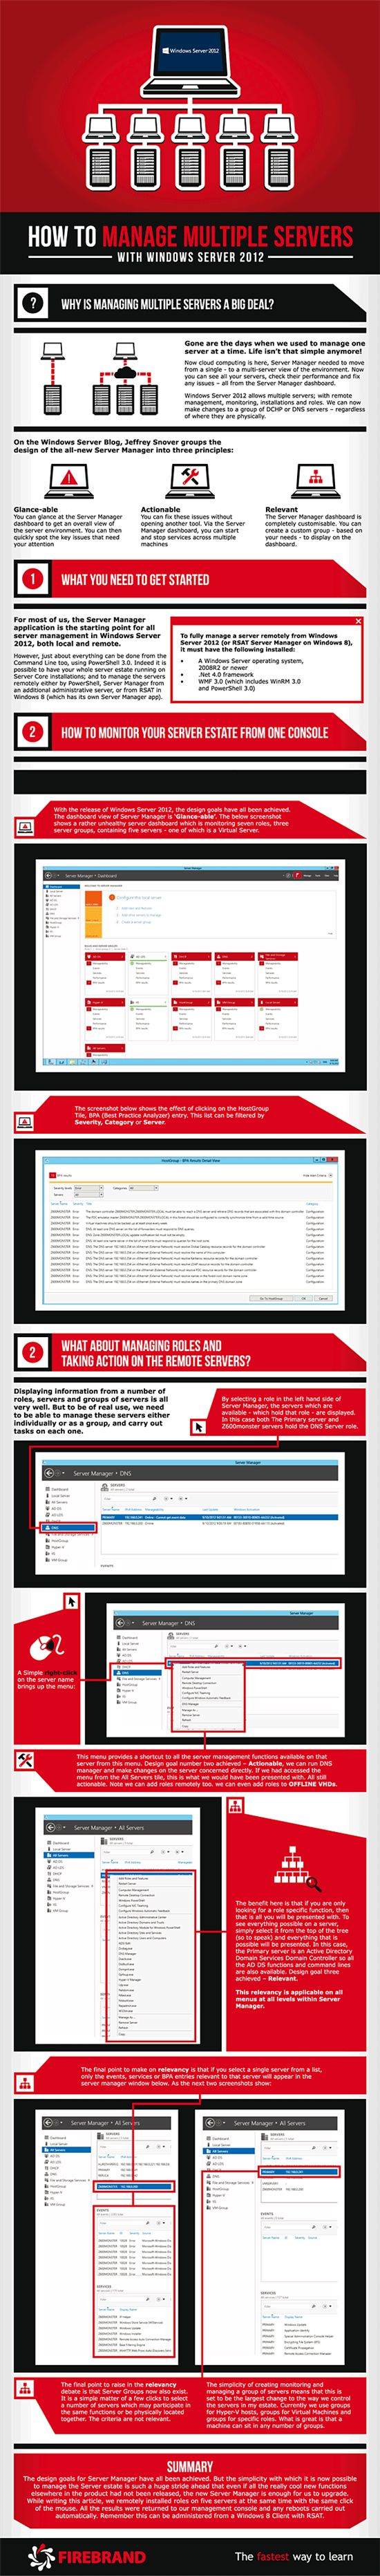 [#Infographic] How to Manage Multiple Servers on Windows Server 2012 | #WinServ